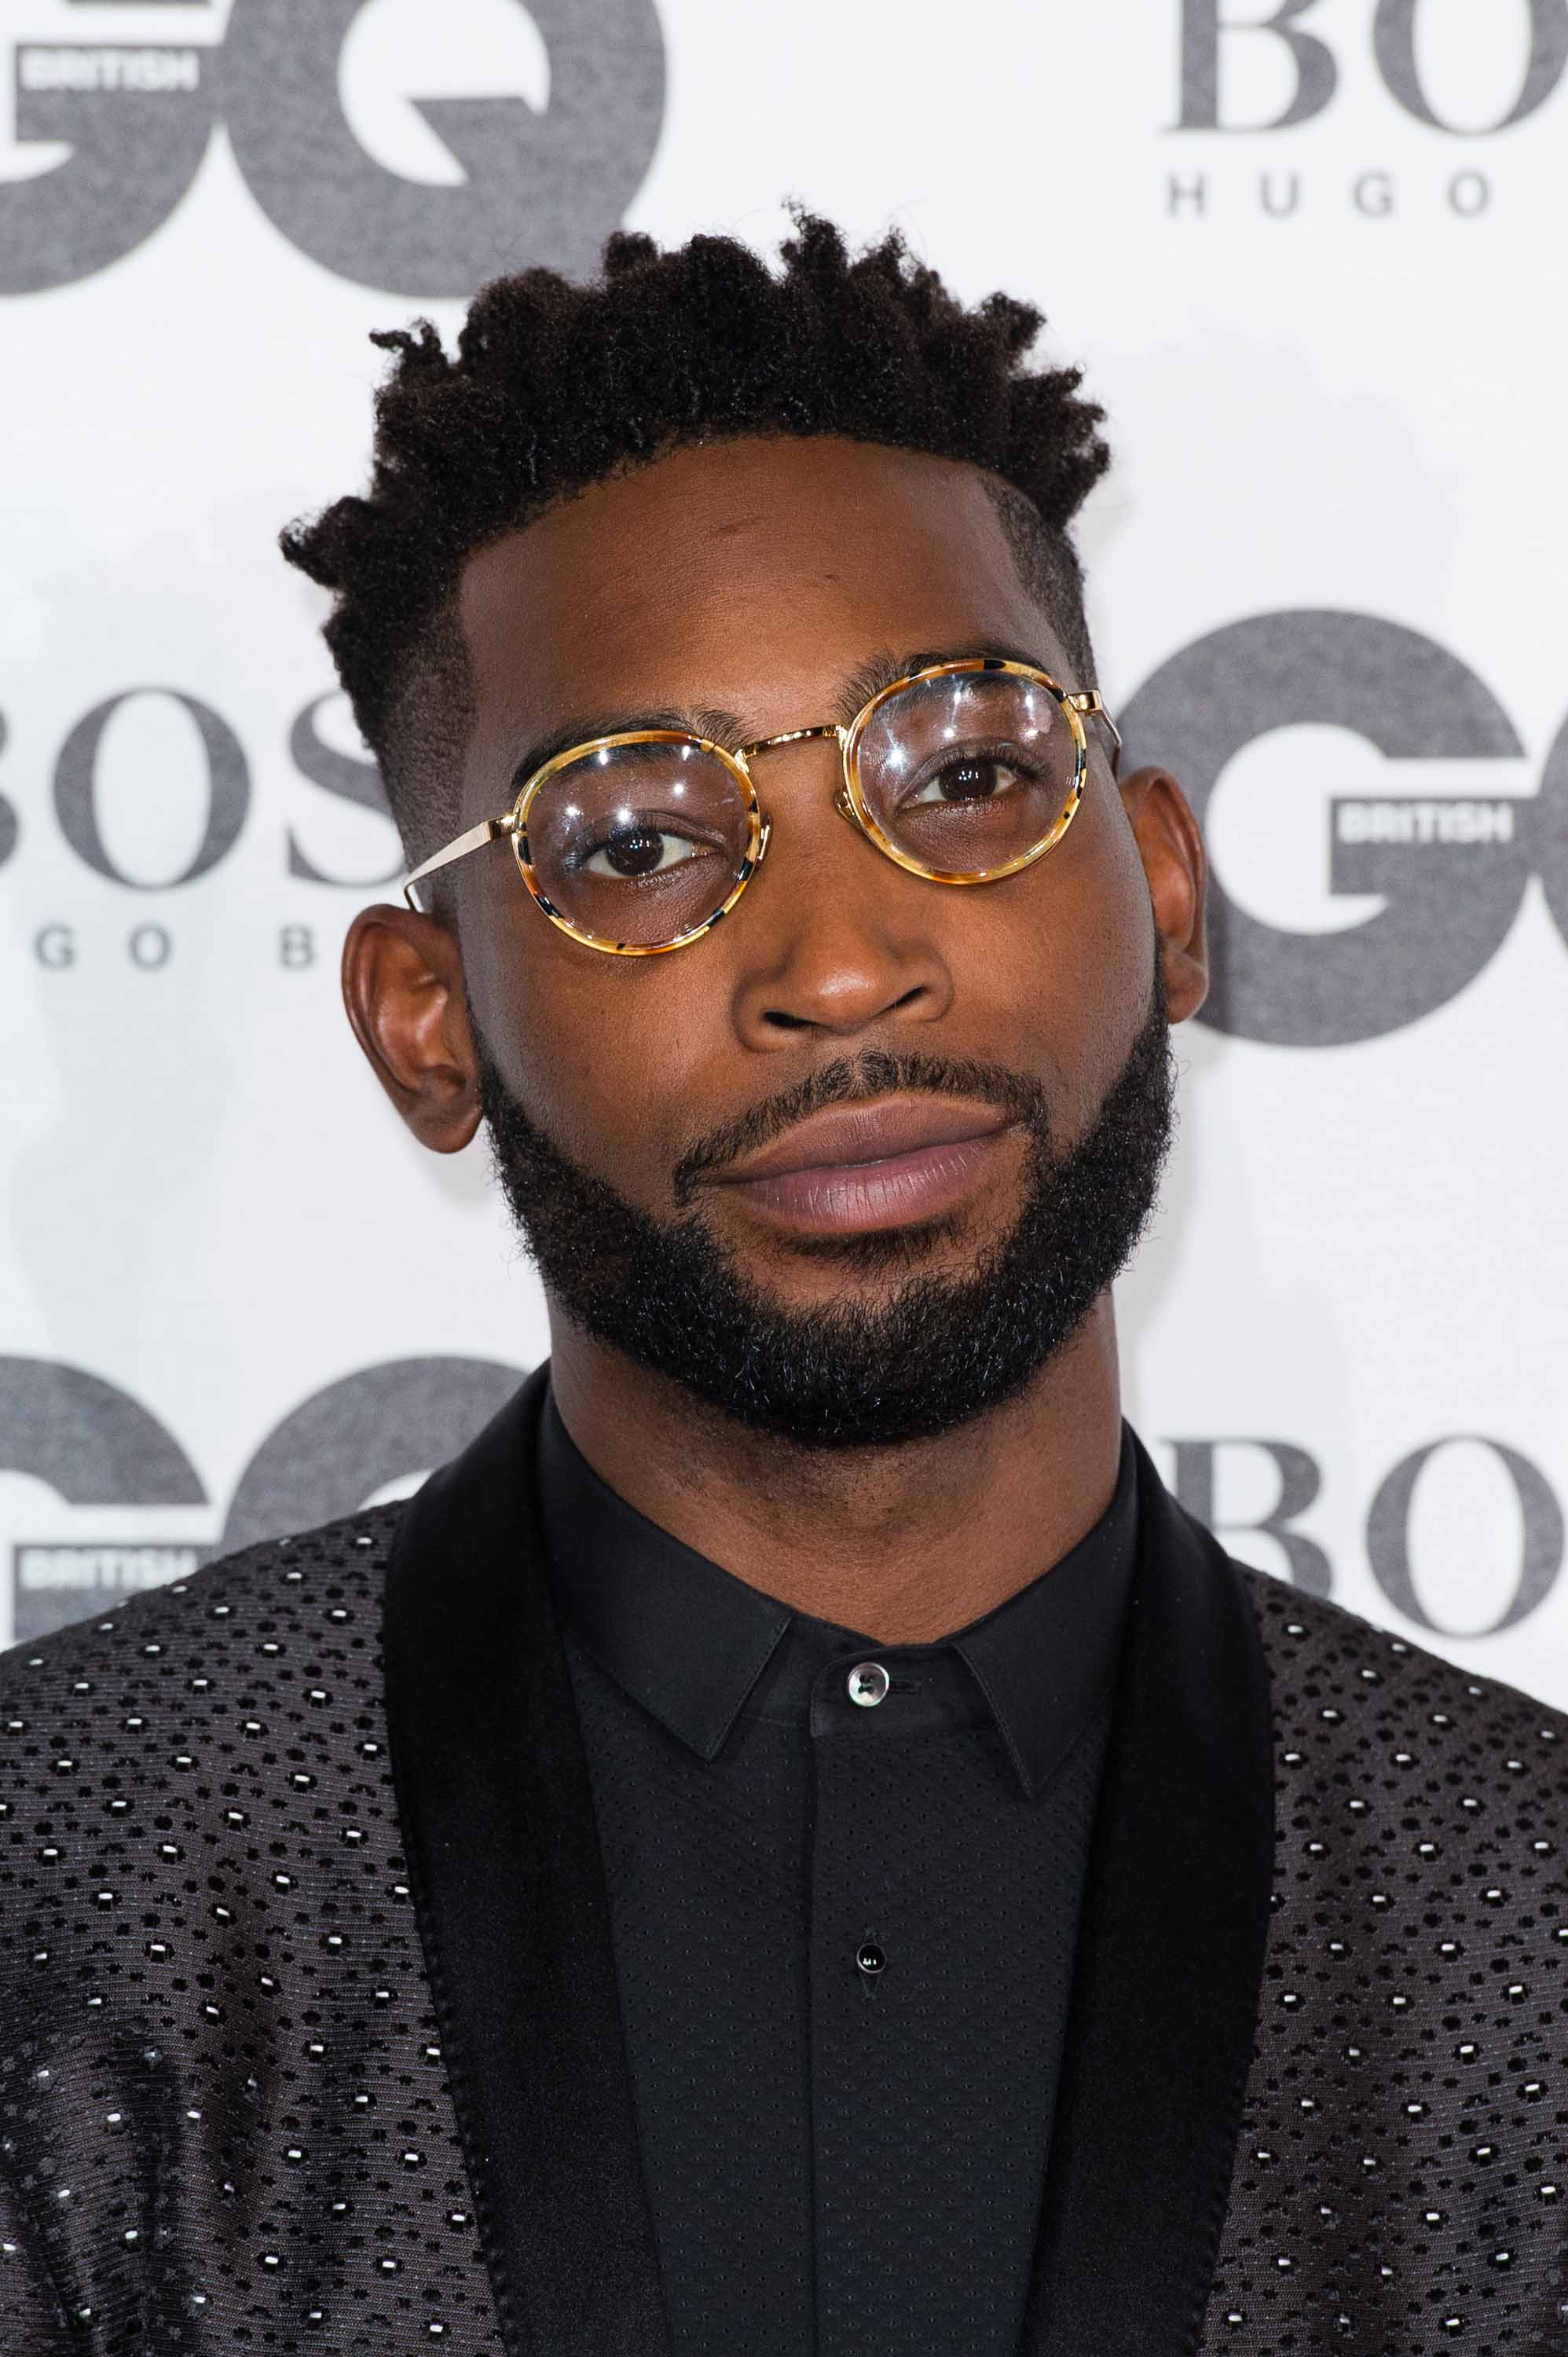 mens hair Tinie Tempah GQ awards 2016